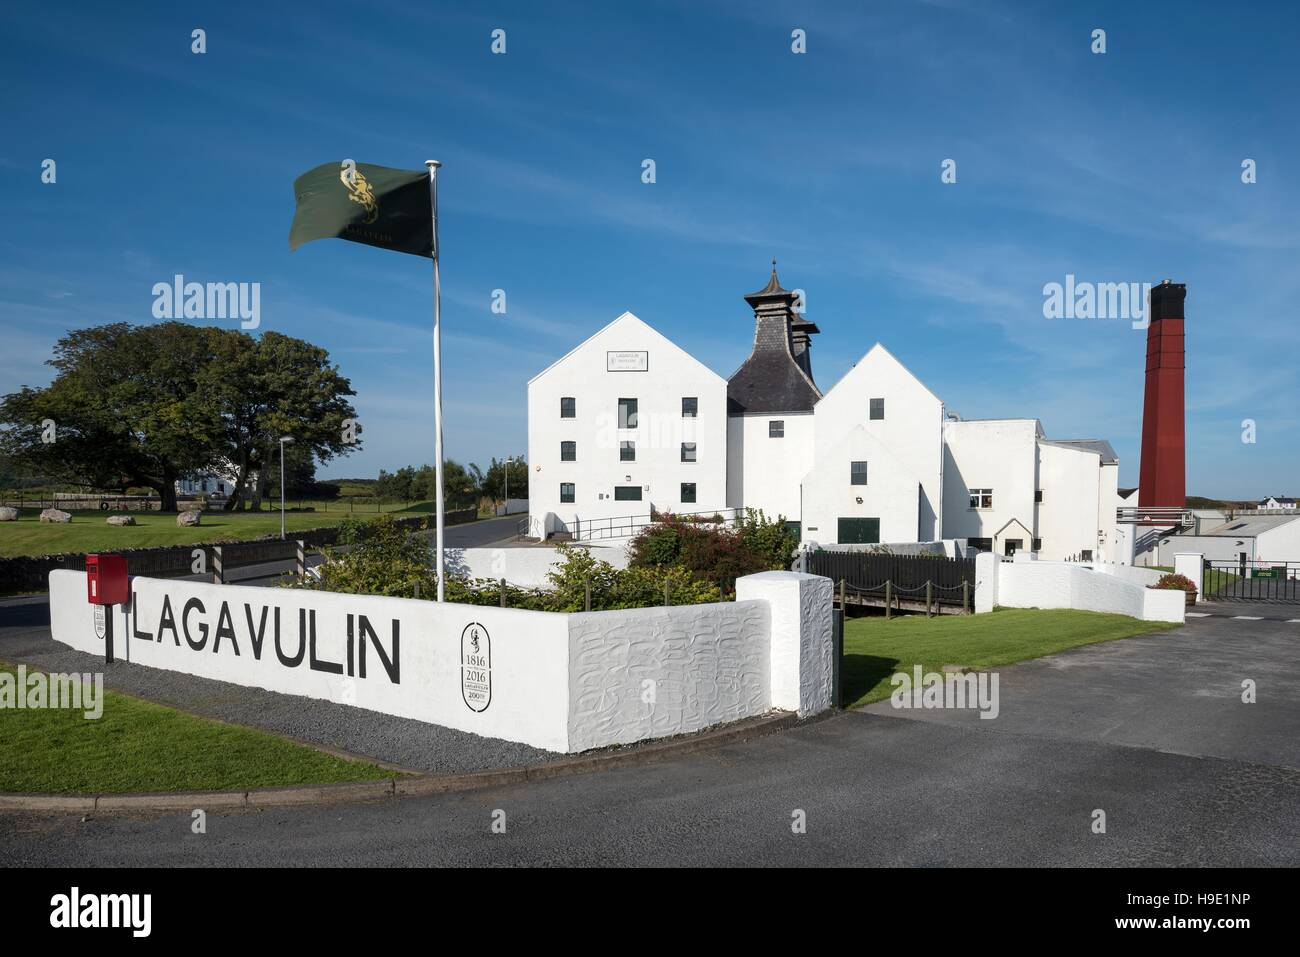 Lagavulin whiskey distillery, Islay, Inner Hebrides, Scotland, United Kingdom - Stock Image